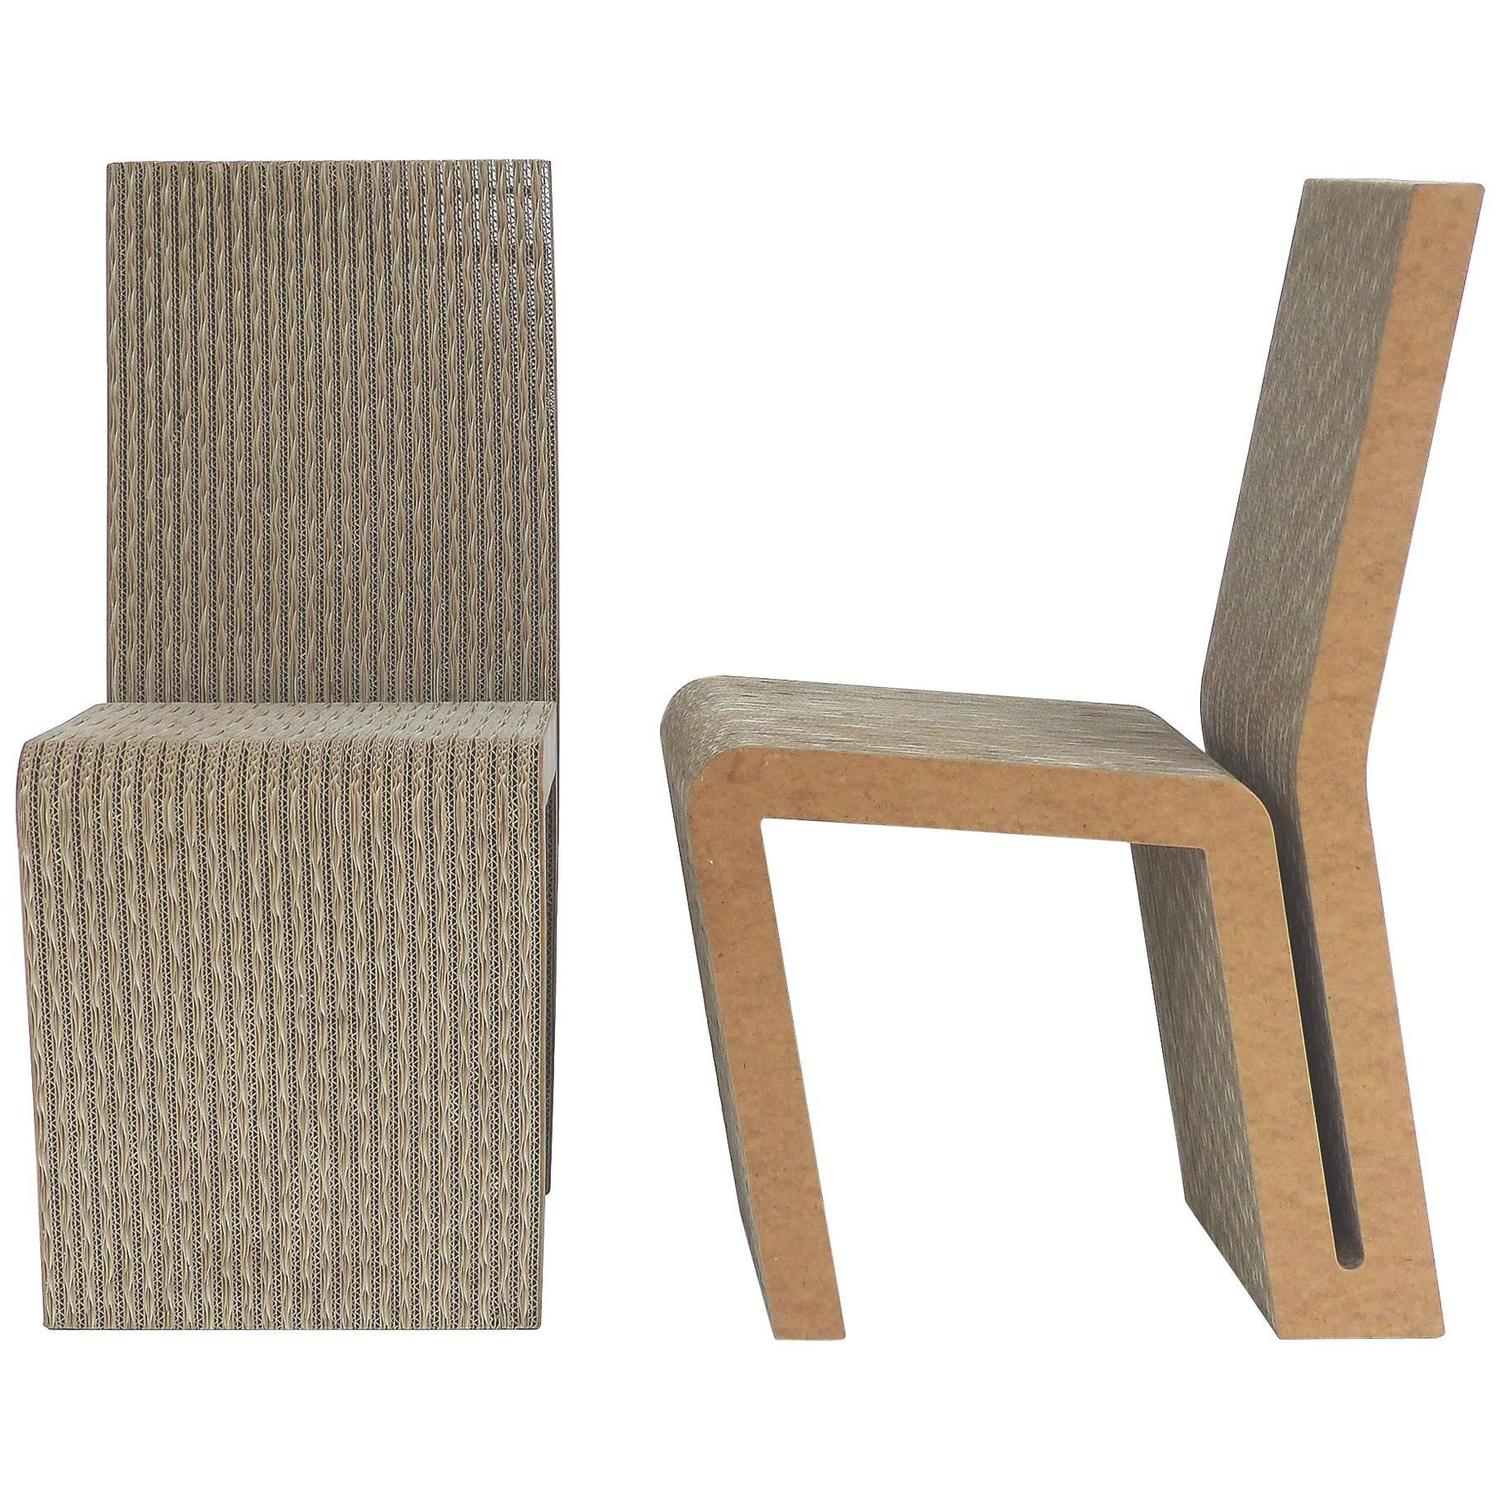 frank gehry cardboard chair baby swing seat side chairs for sale at 1stdibs